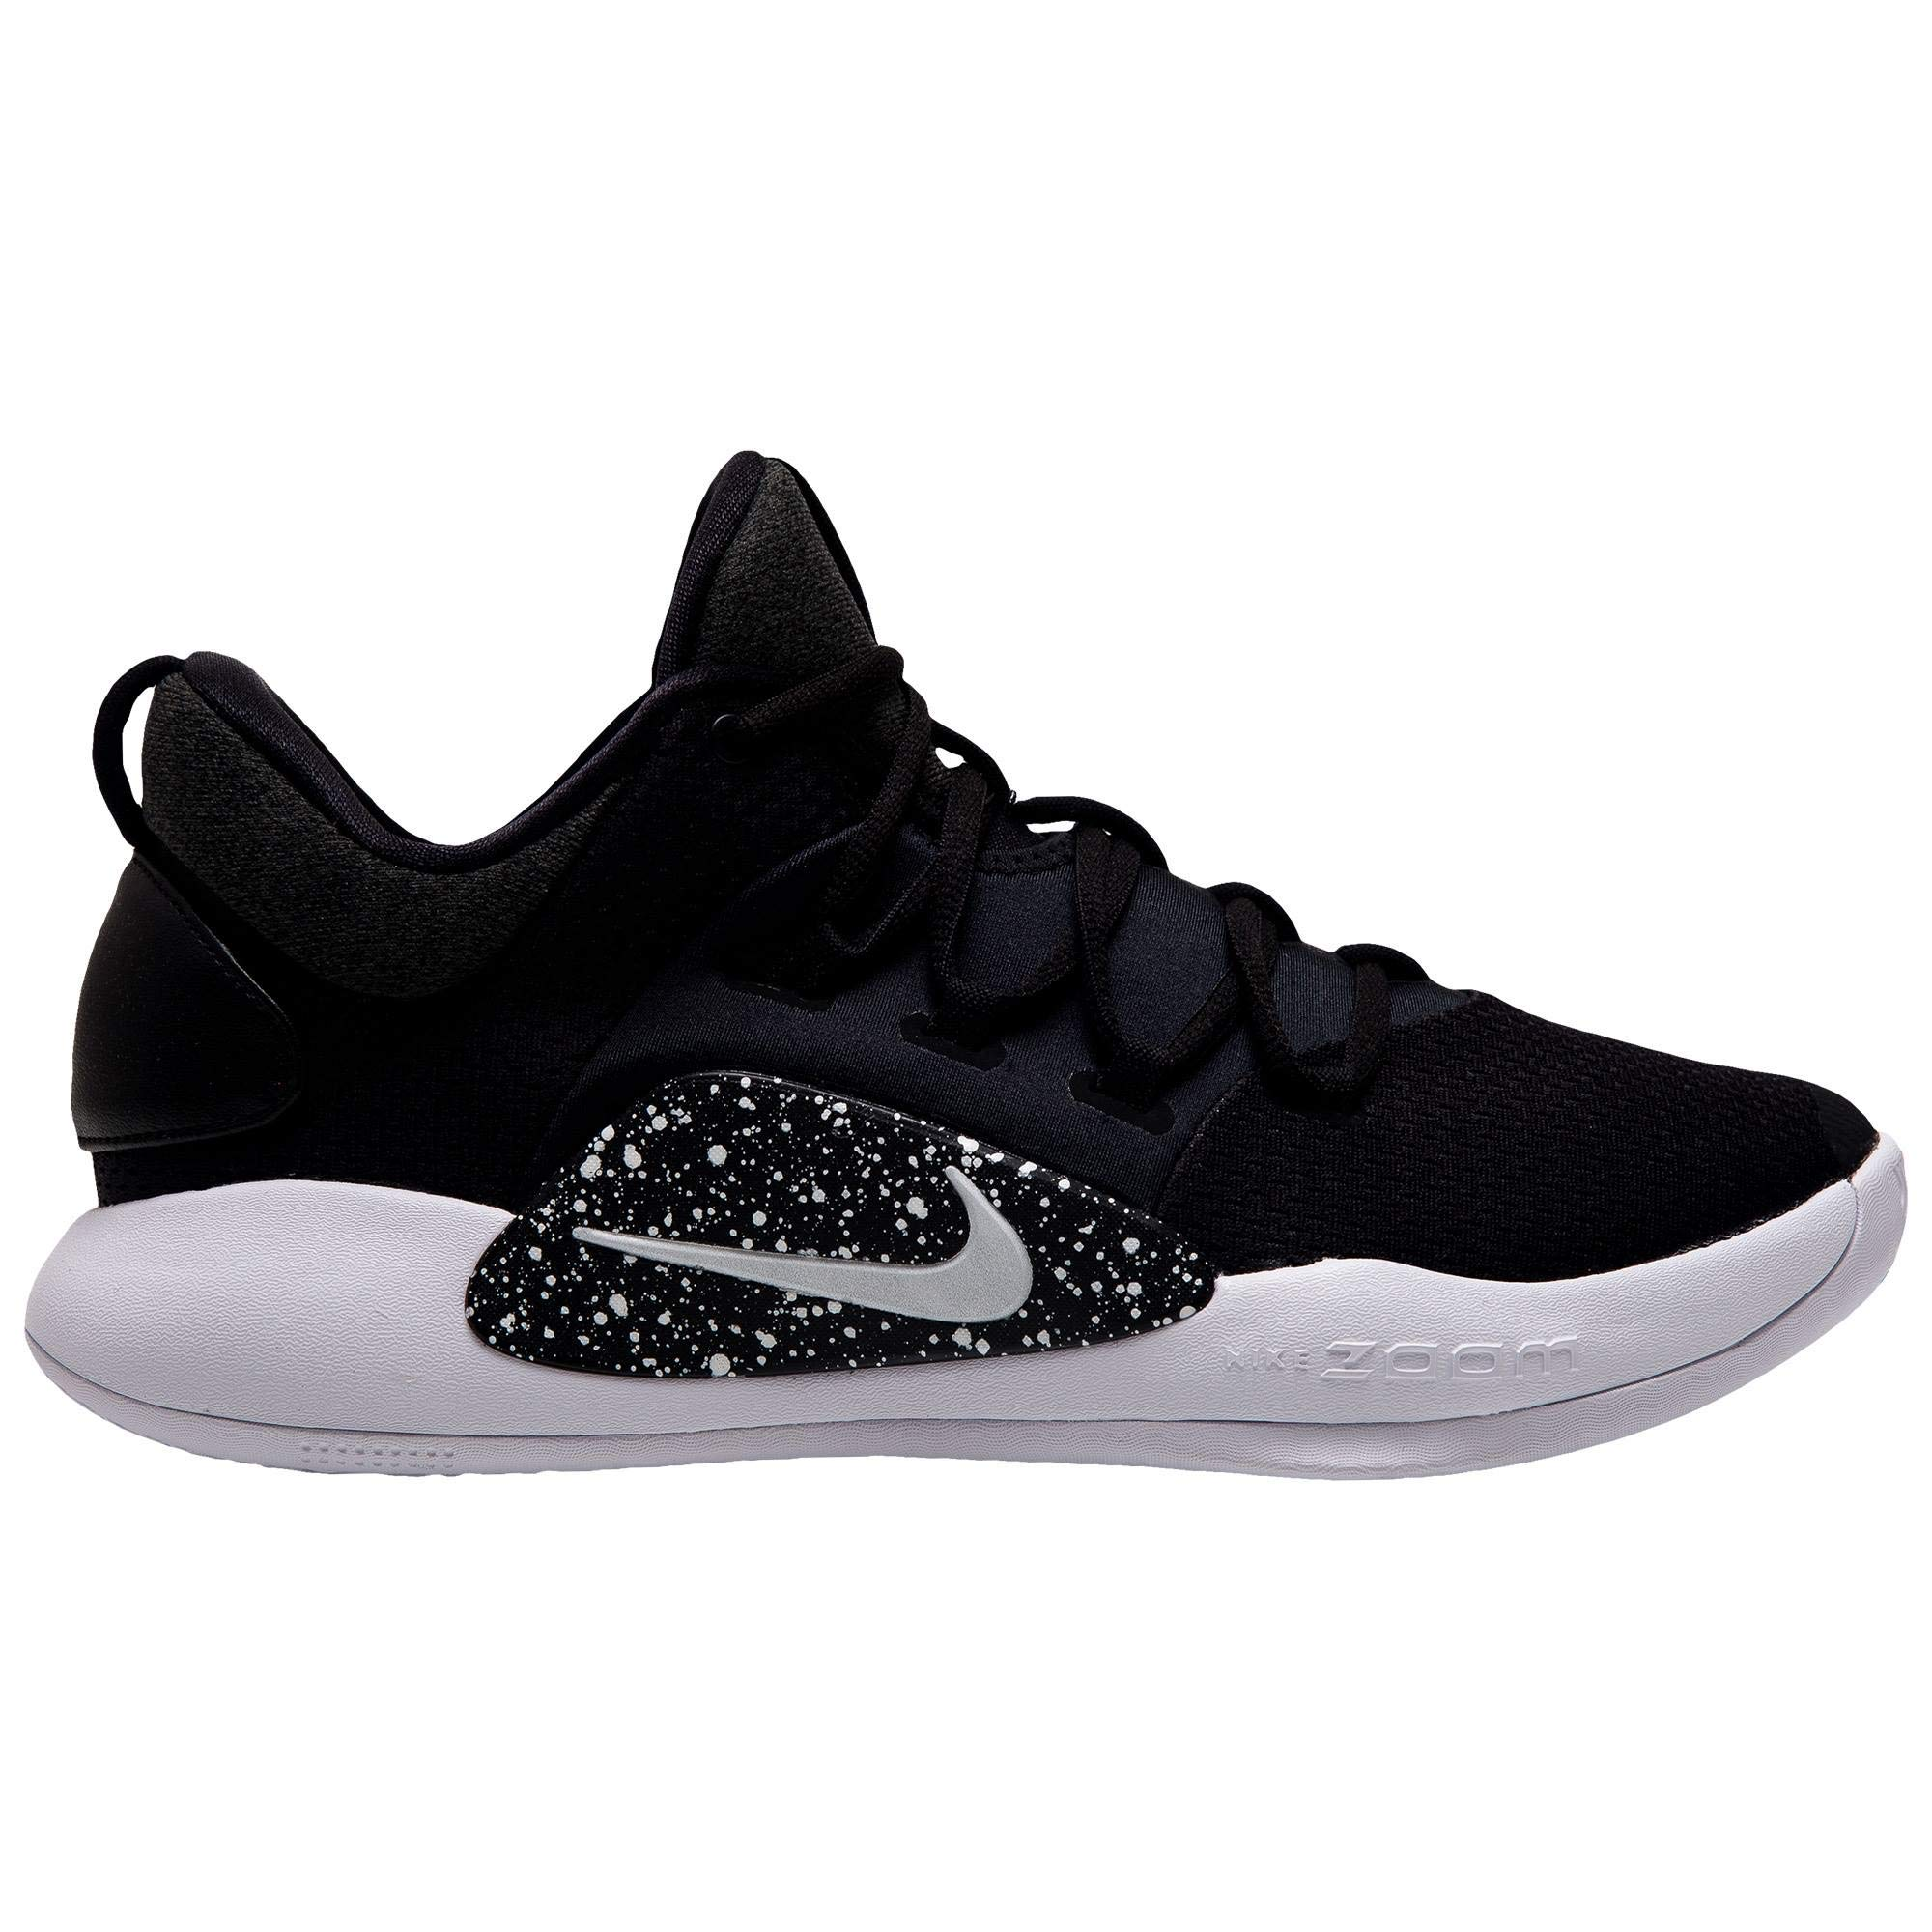 ae69fb0fe910 Galleon - Nike Men s Hyperdunk X Low Basketball Shoe AR0464-003 12.5 D(M) US  Black White